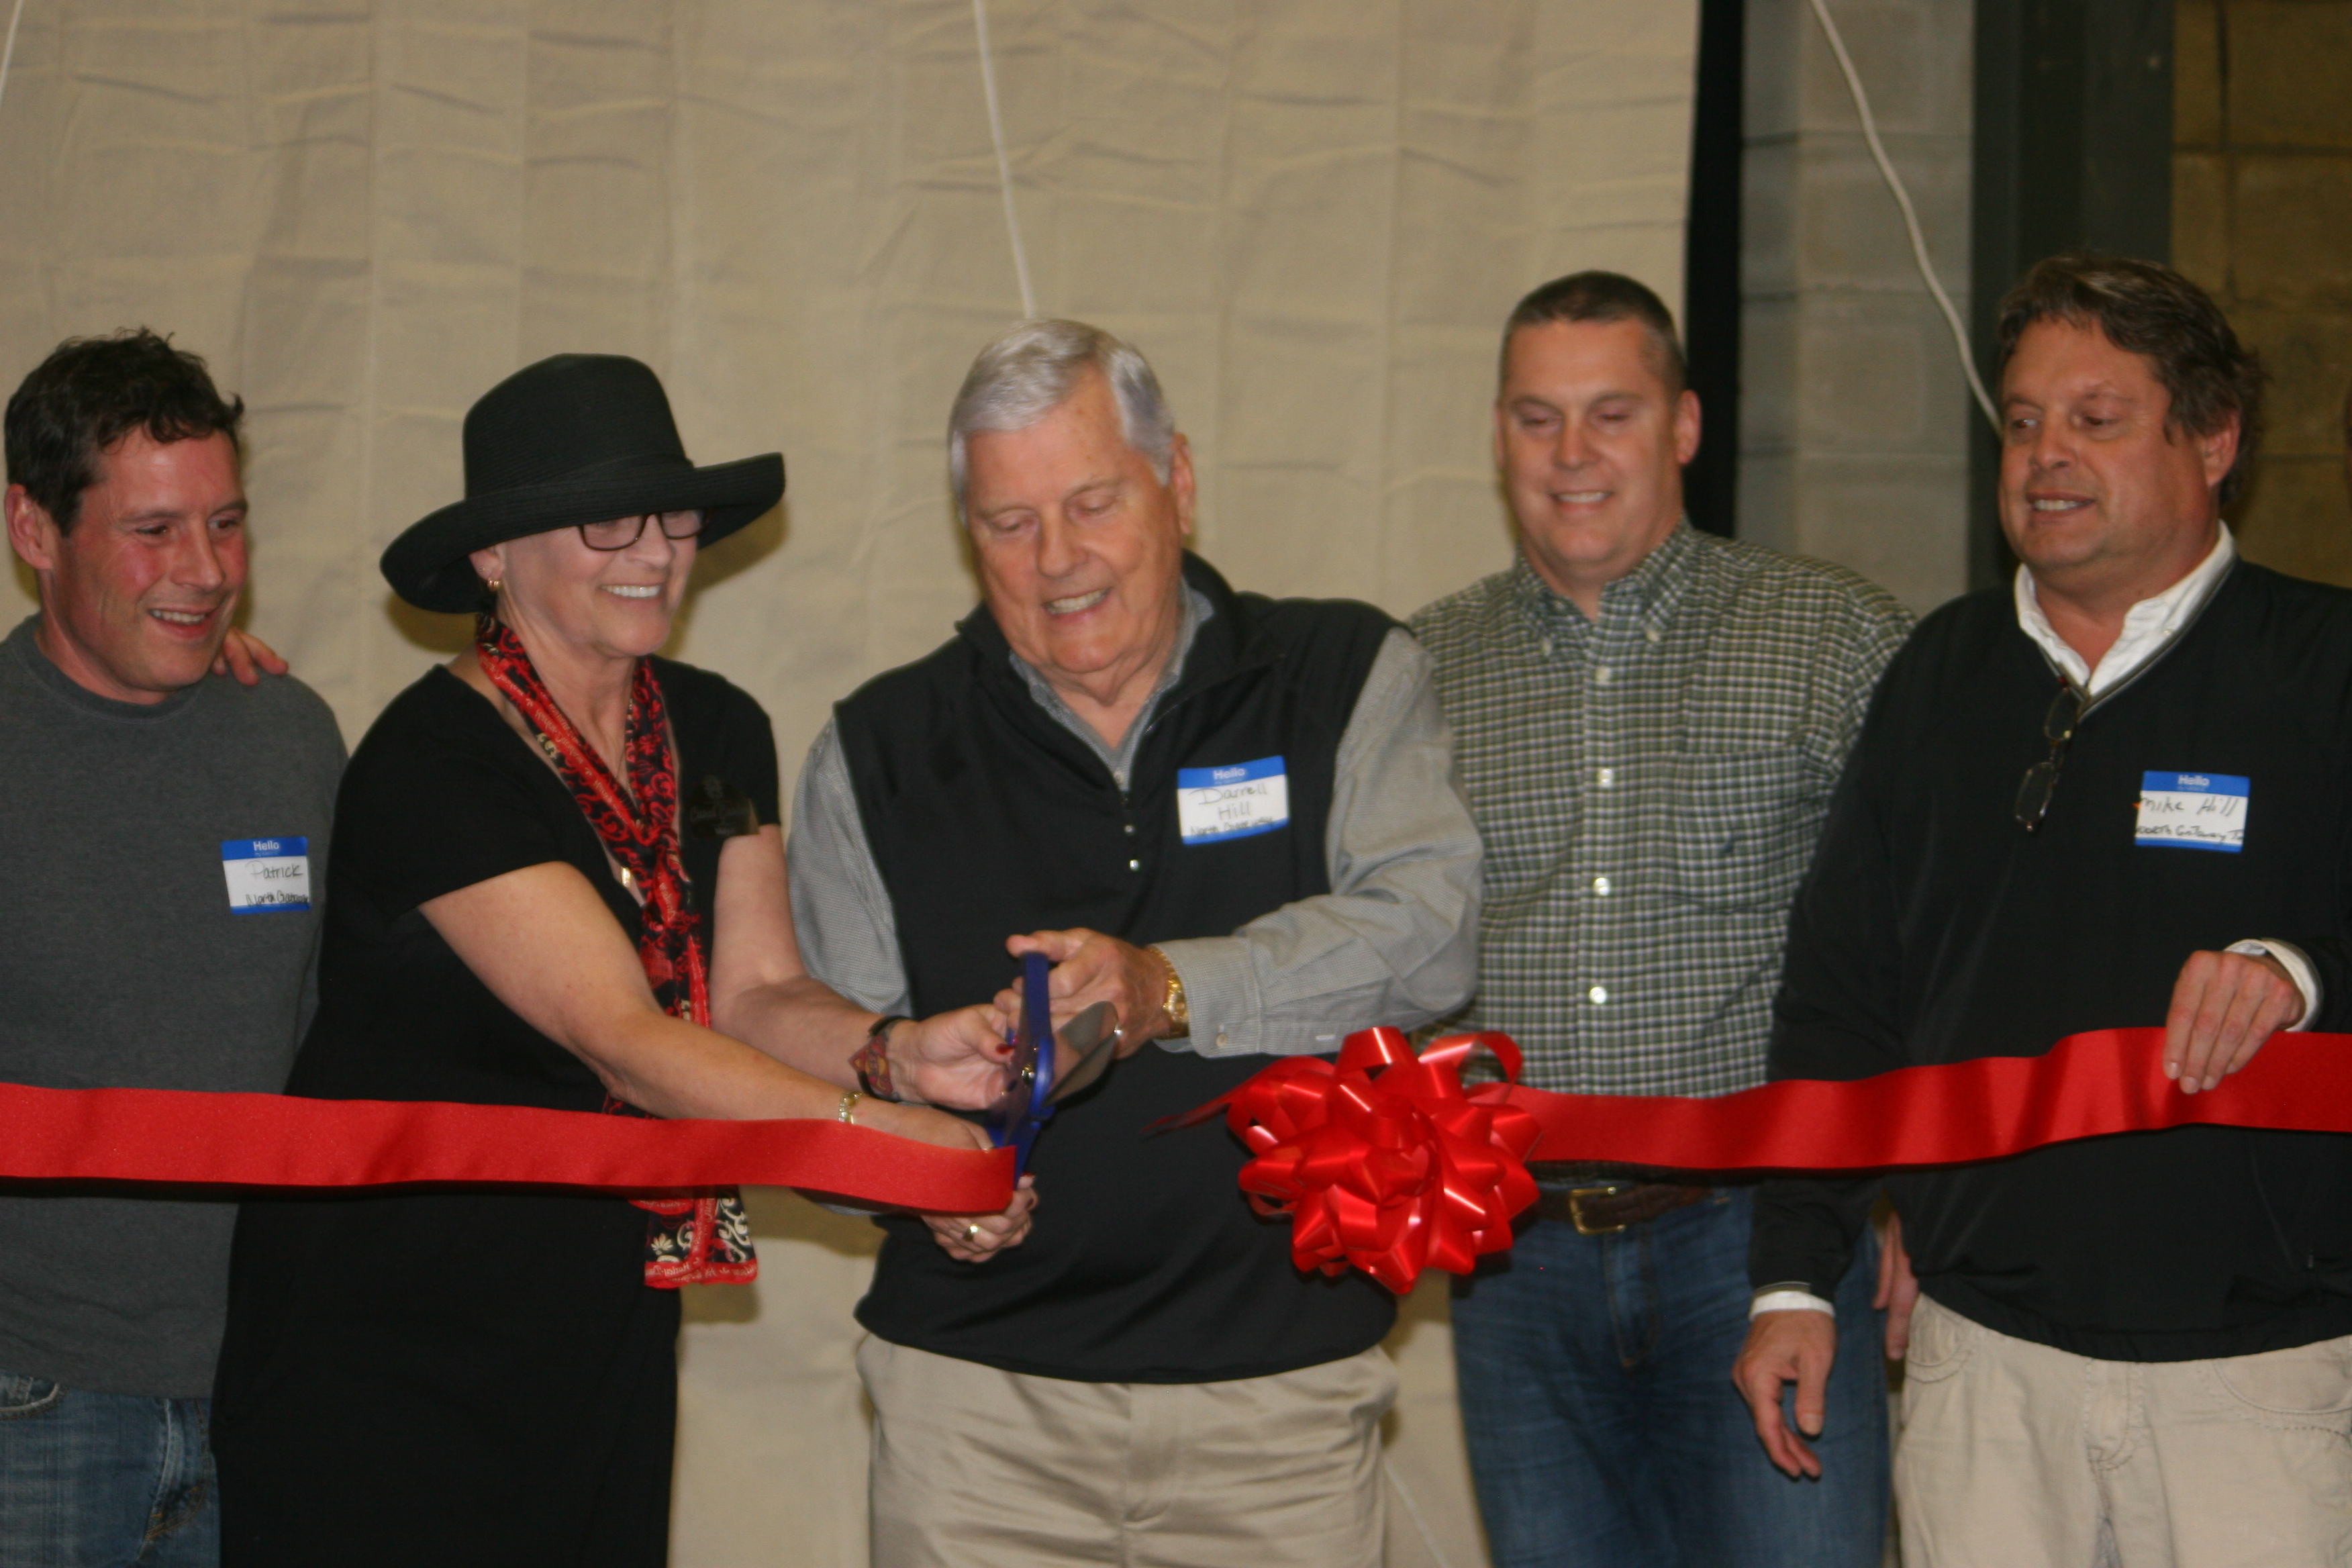 Gateway to the Future: Tire Wholesaler Holds Grand Opening for Warehouse Expansion